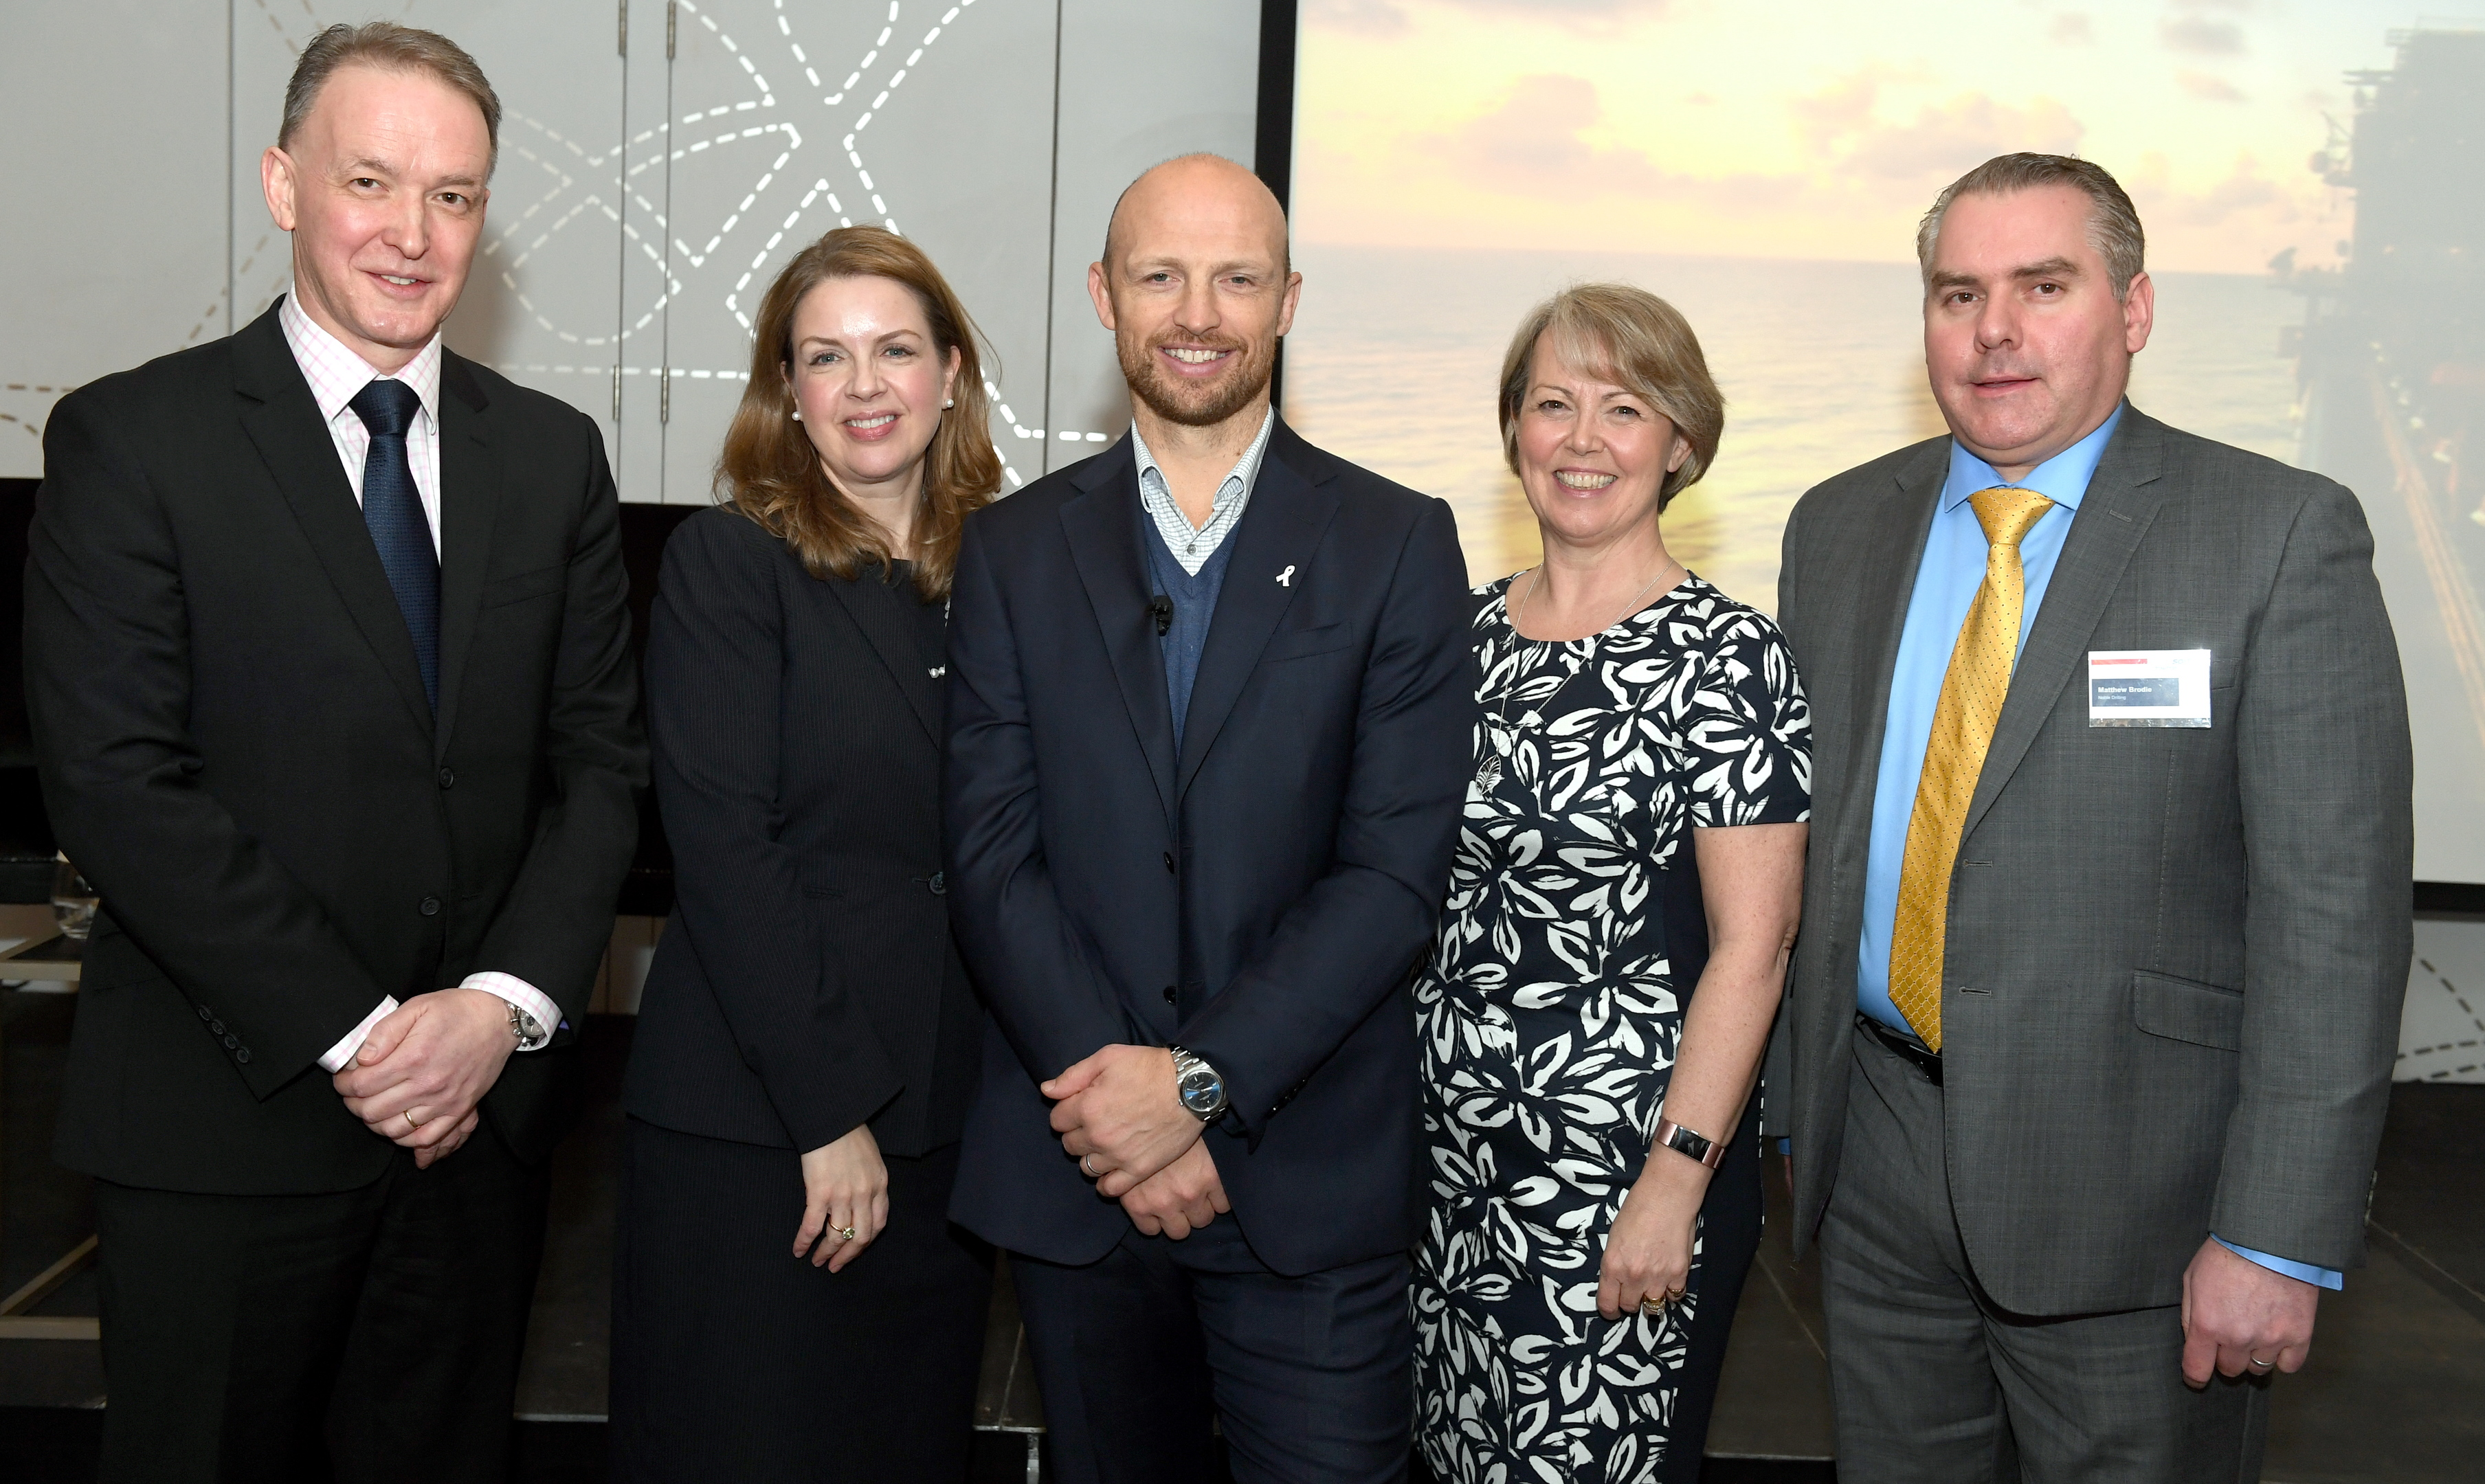 Photo Diary ;  Sodexo business breakfast with Matt Dawson at the Chester Hotel, Aberdeen.     Pictured - Robin Watson, Louise Goetz, Matt Dawson, Susan Elston, Matthew Brodie.     Picture by Kami Thomson    24-01-18